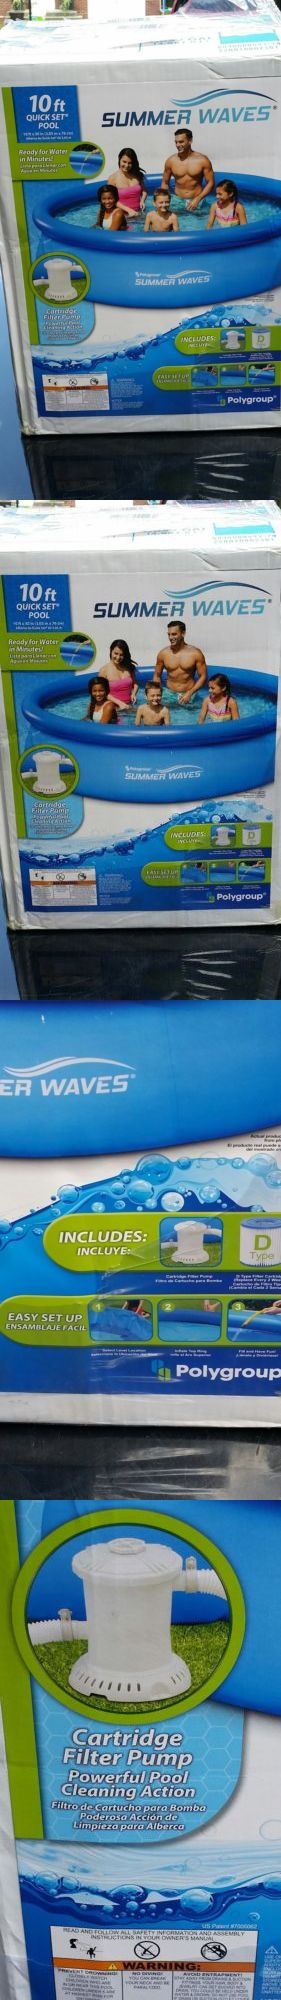 Inflatable and Kid Pools 116407: Summer Waves 10 Ft. Quick Set Inflatable Above Ground Pool With Filter Pump -> BUY IT NOW ONLY: $59 on eBay!